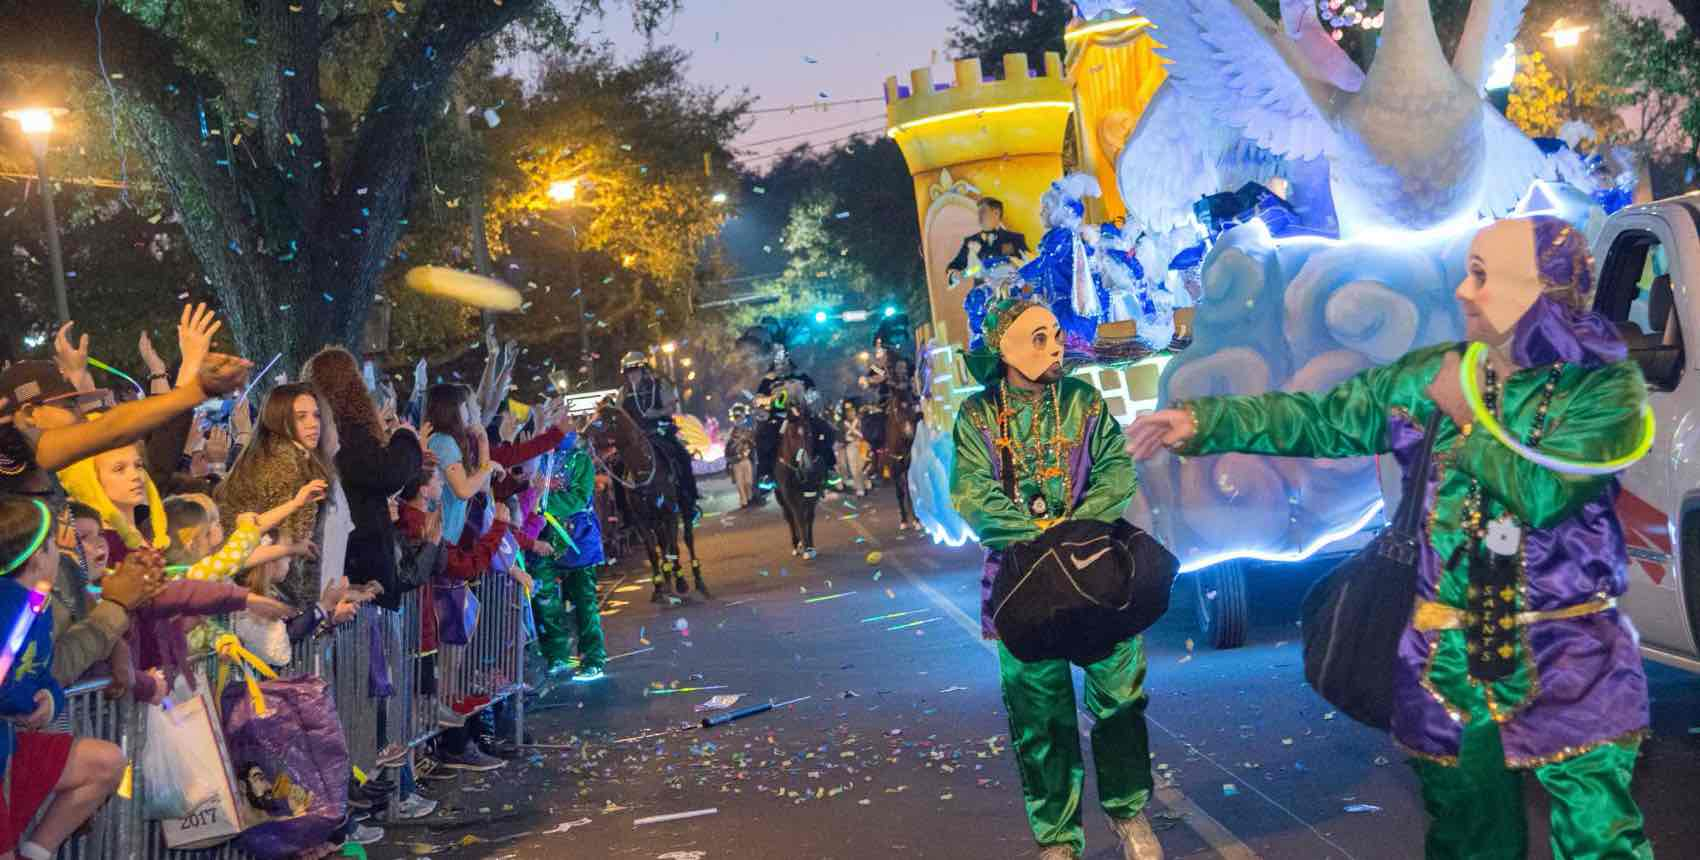 Carnival in Mobile has the hard partying like New Orleans, but is more family friendly